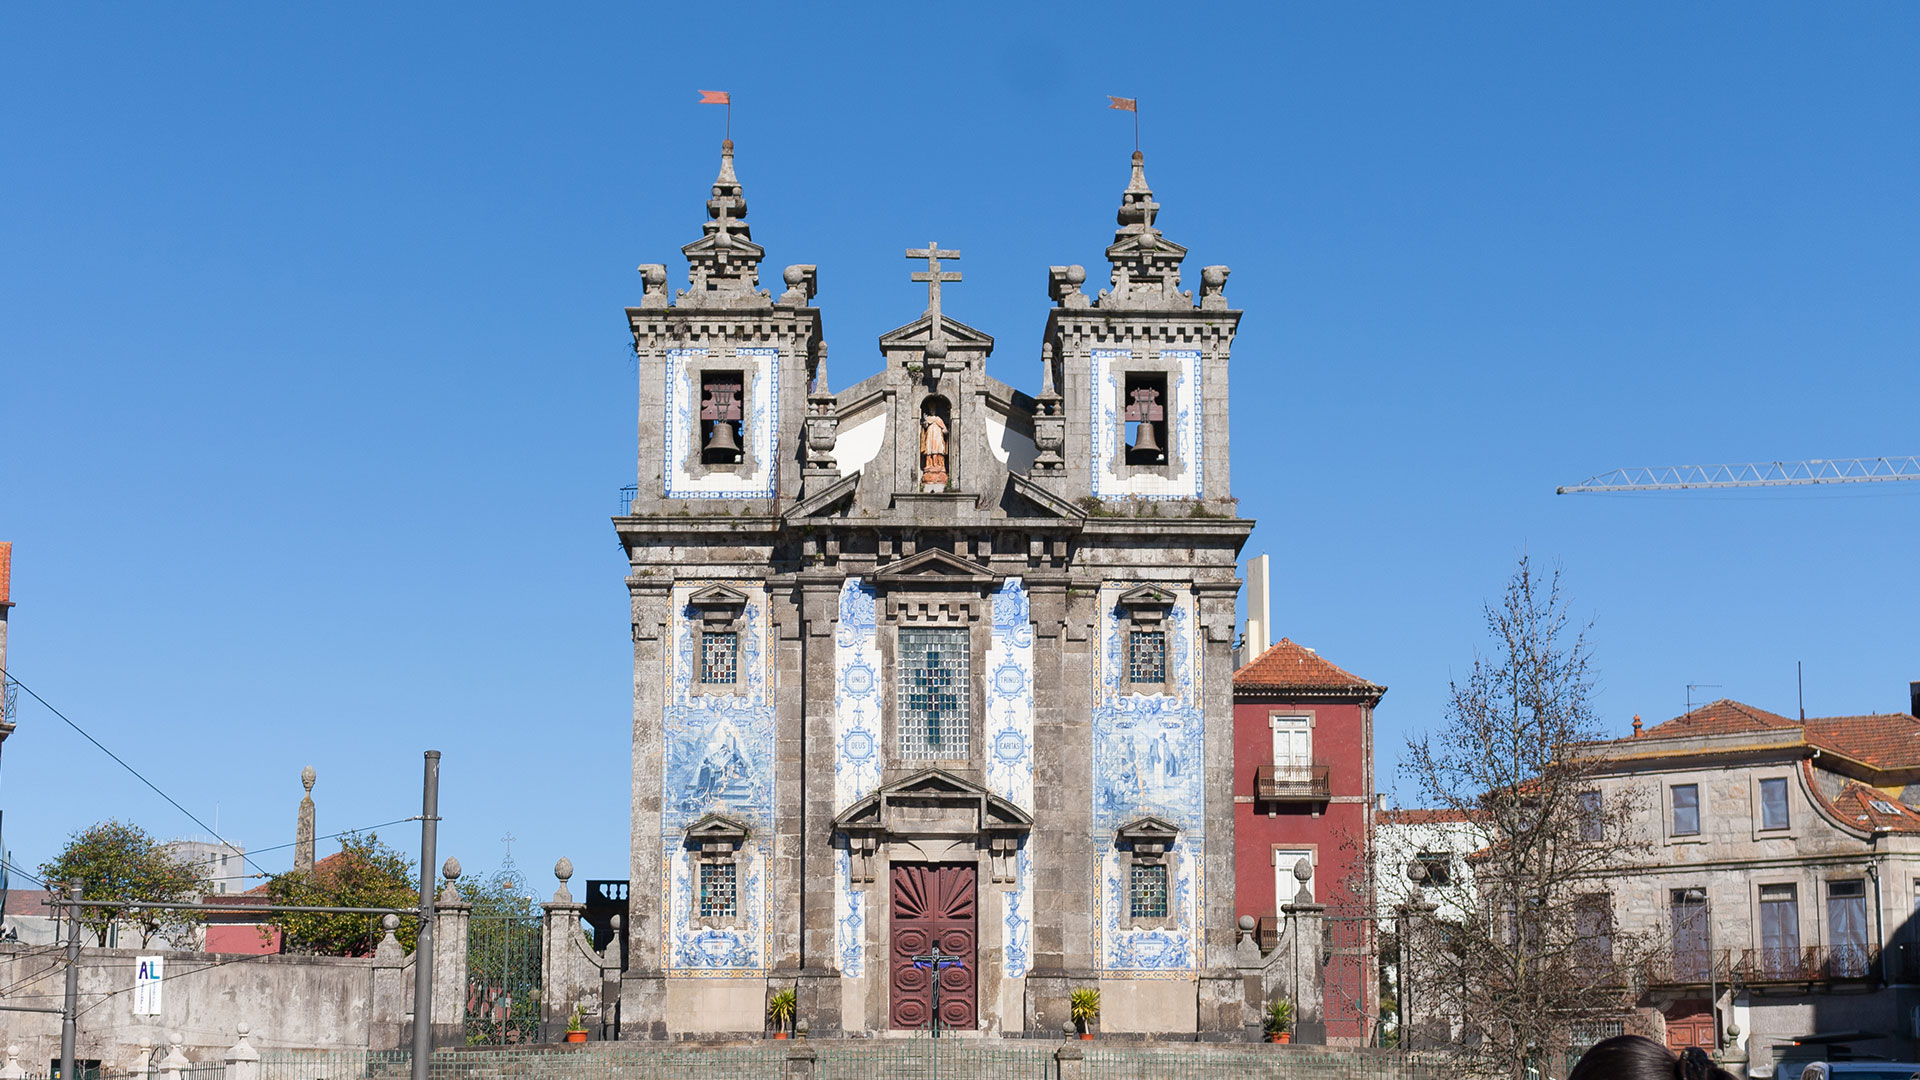 Santo Ildefonso Church | Porto: the city of churches.